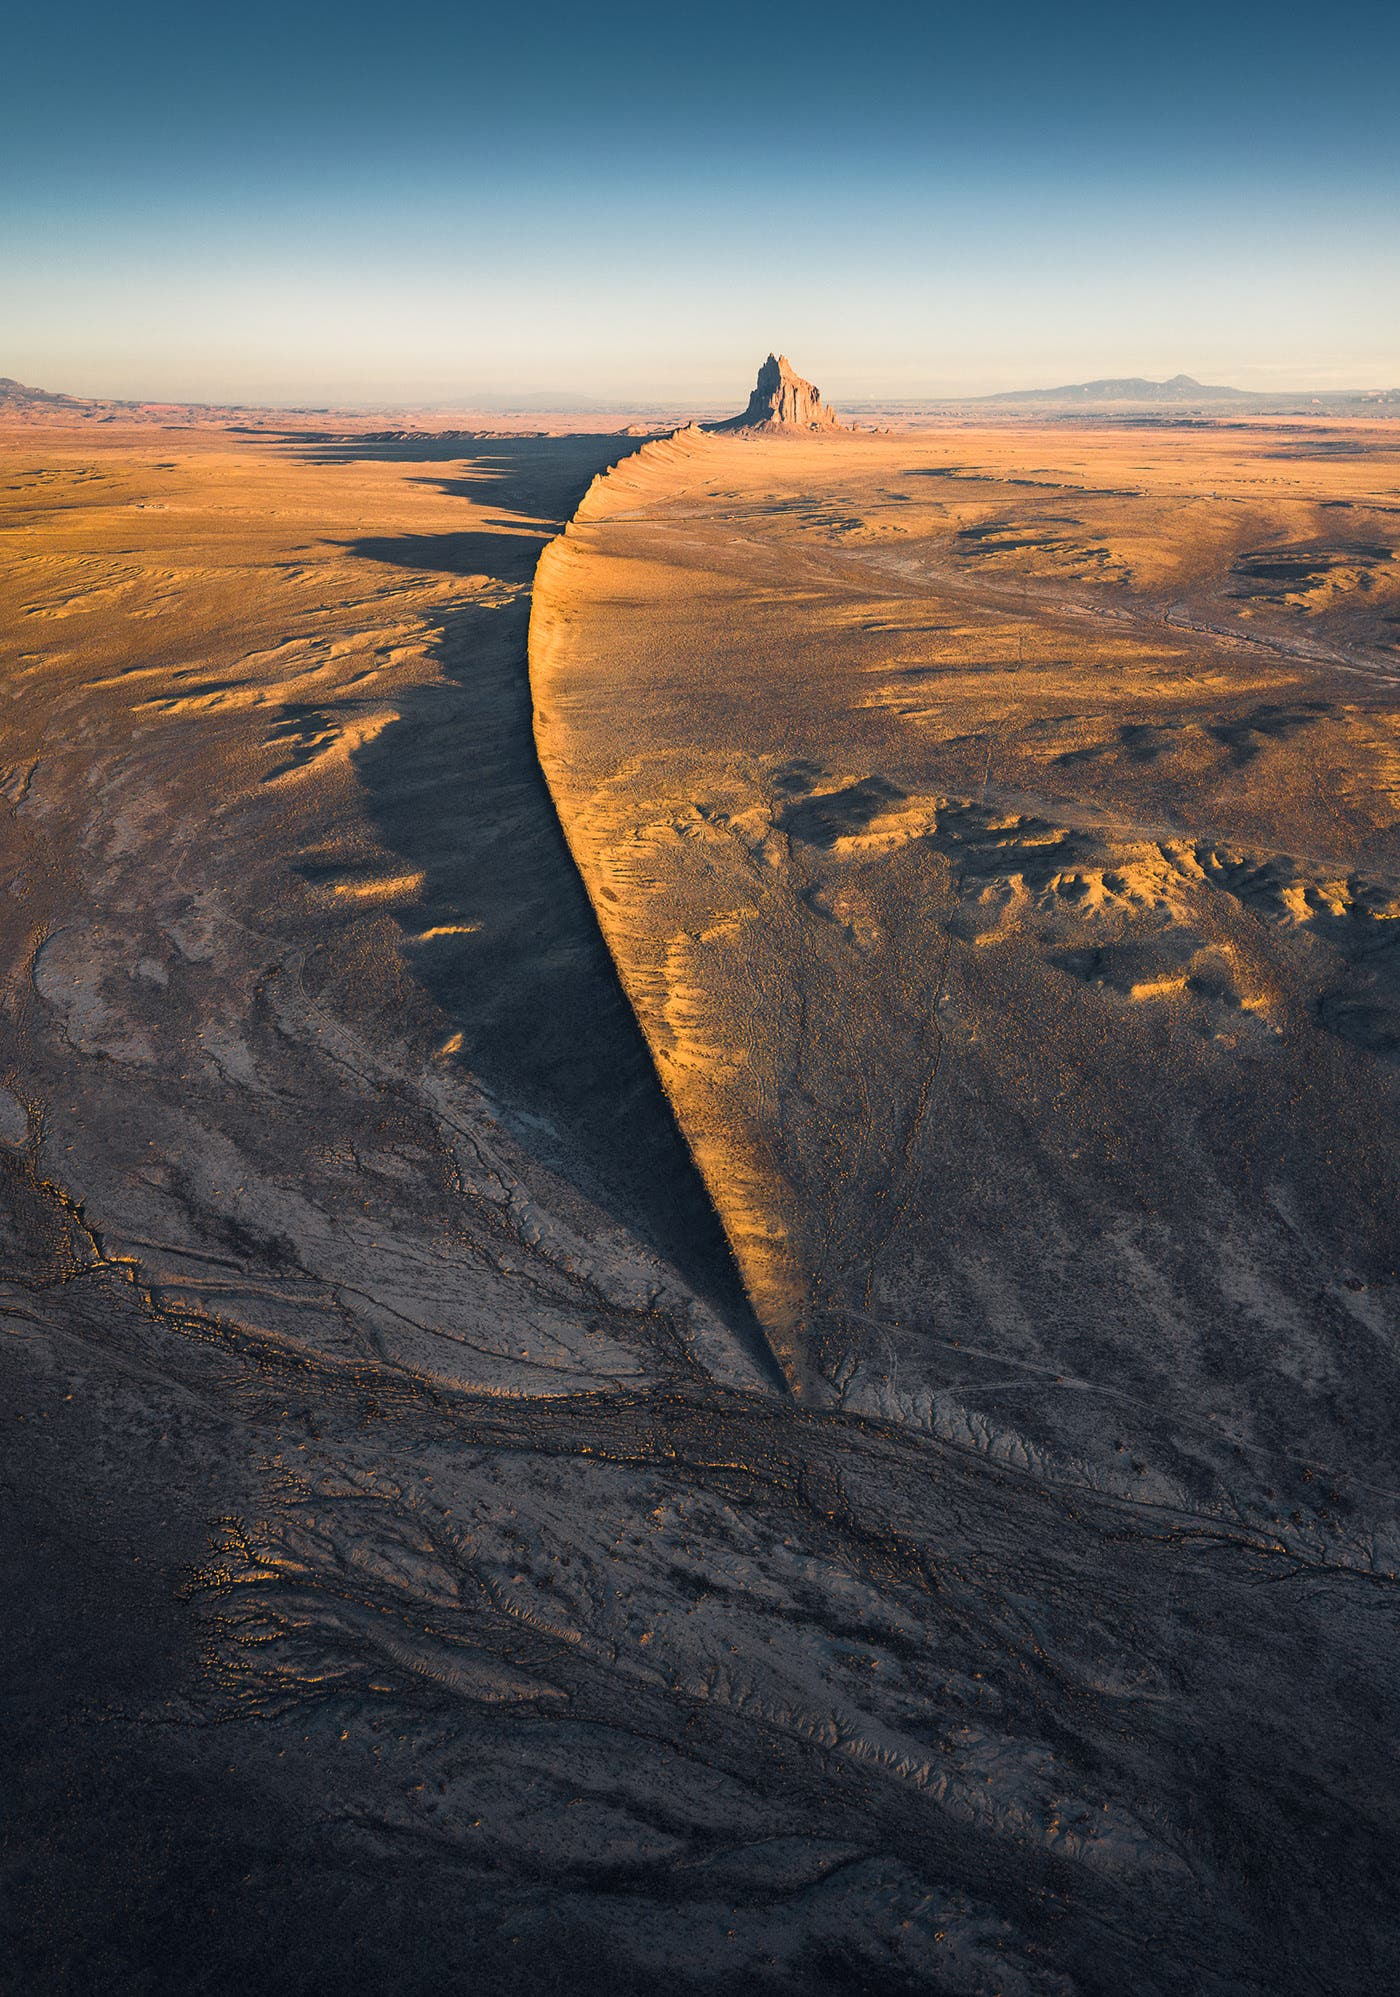 Aerial Photography by Marco Grassi Reveals Earth's Otherworldly Textures